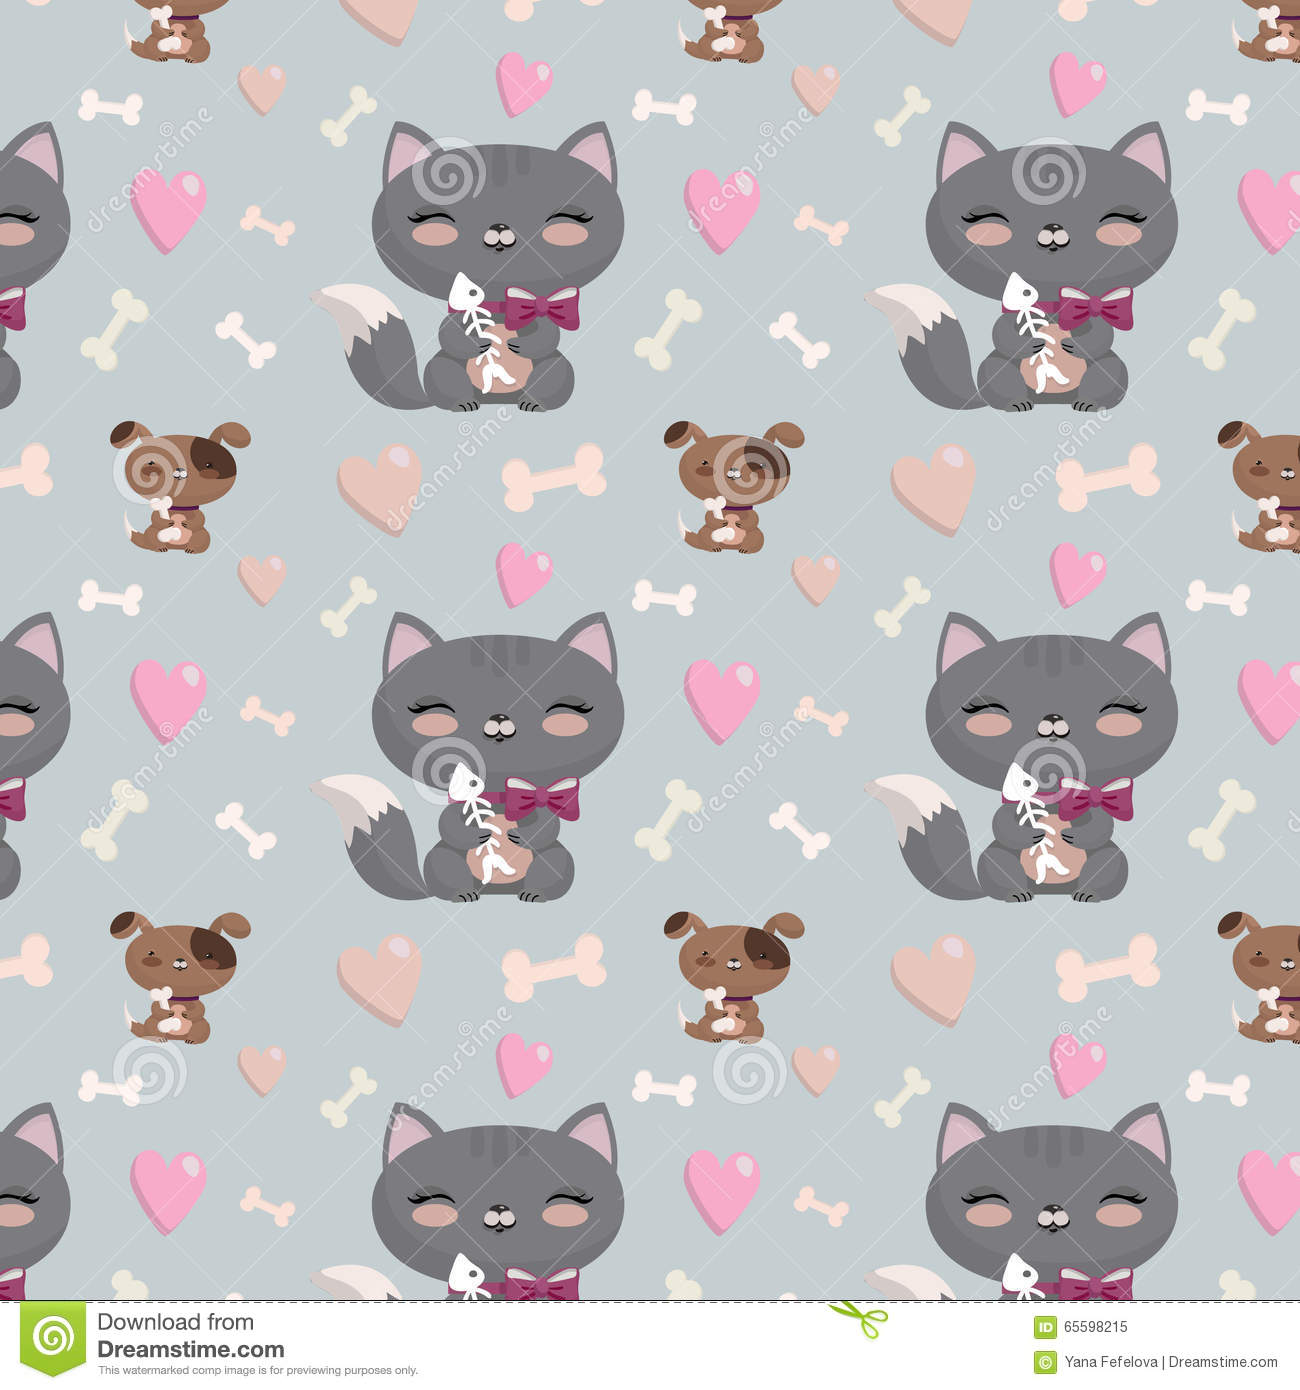 Seamless pattern with cats and dogs